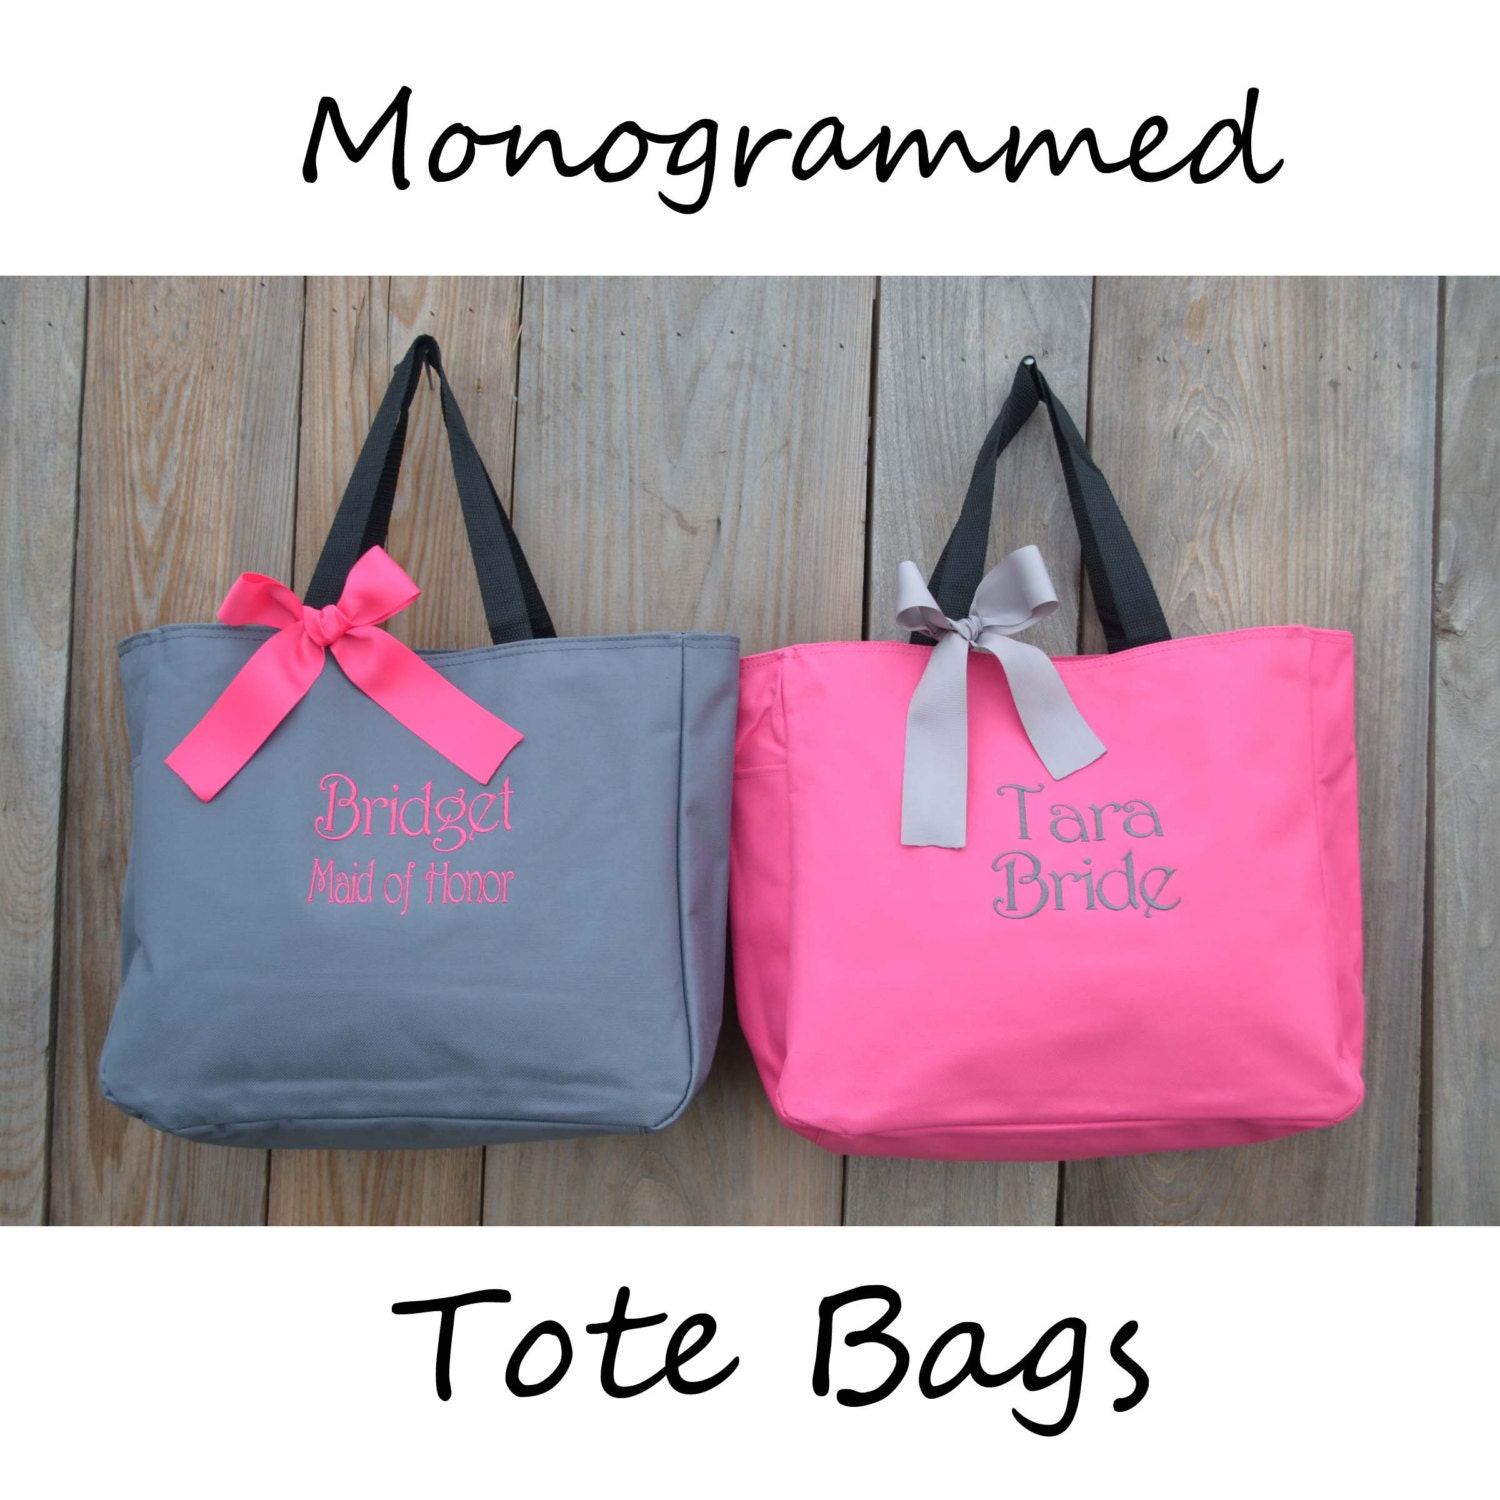 Bridesmaids Gifts Personalized Tote Bags Personalized Tote